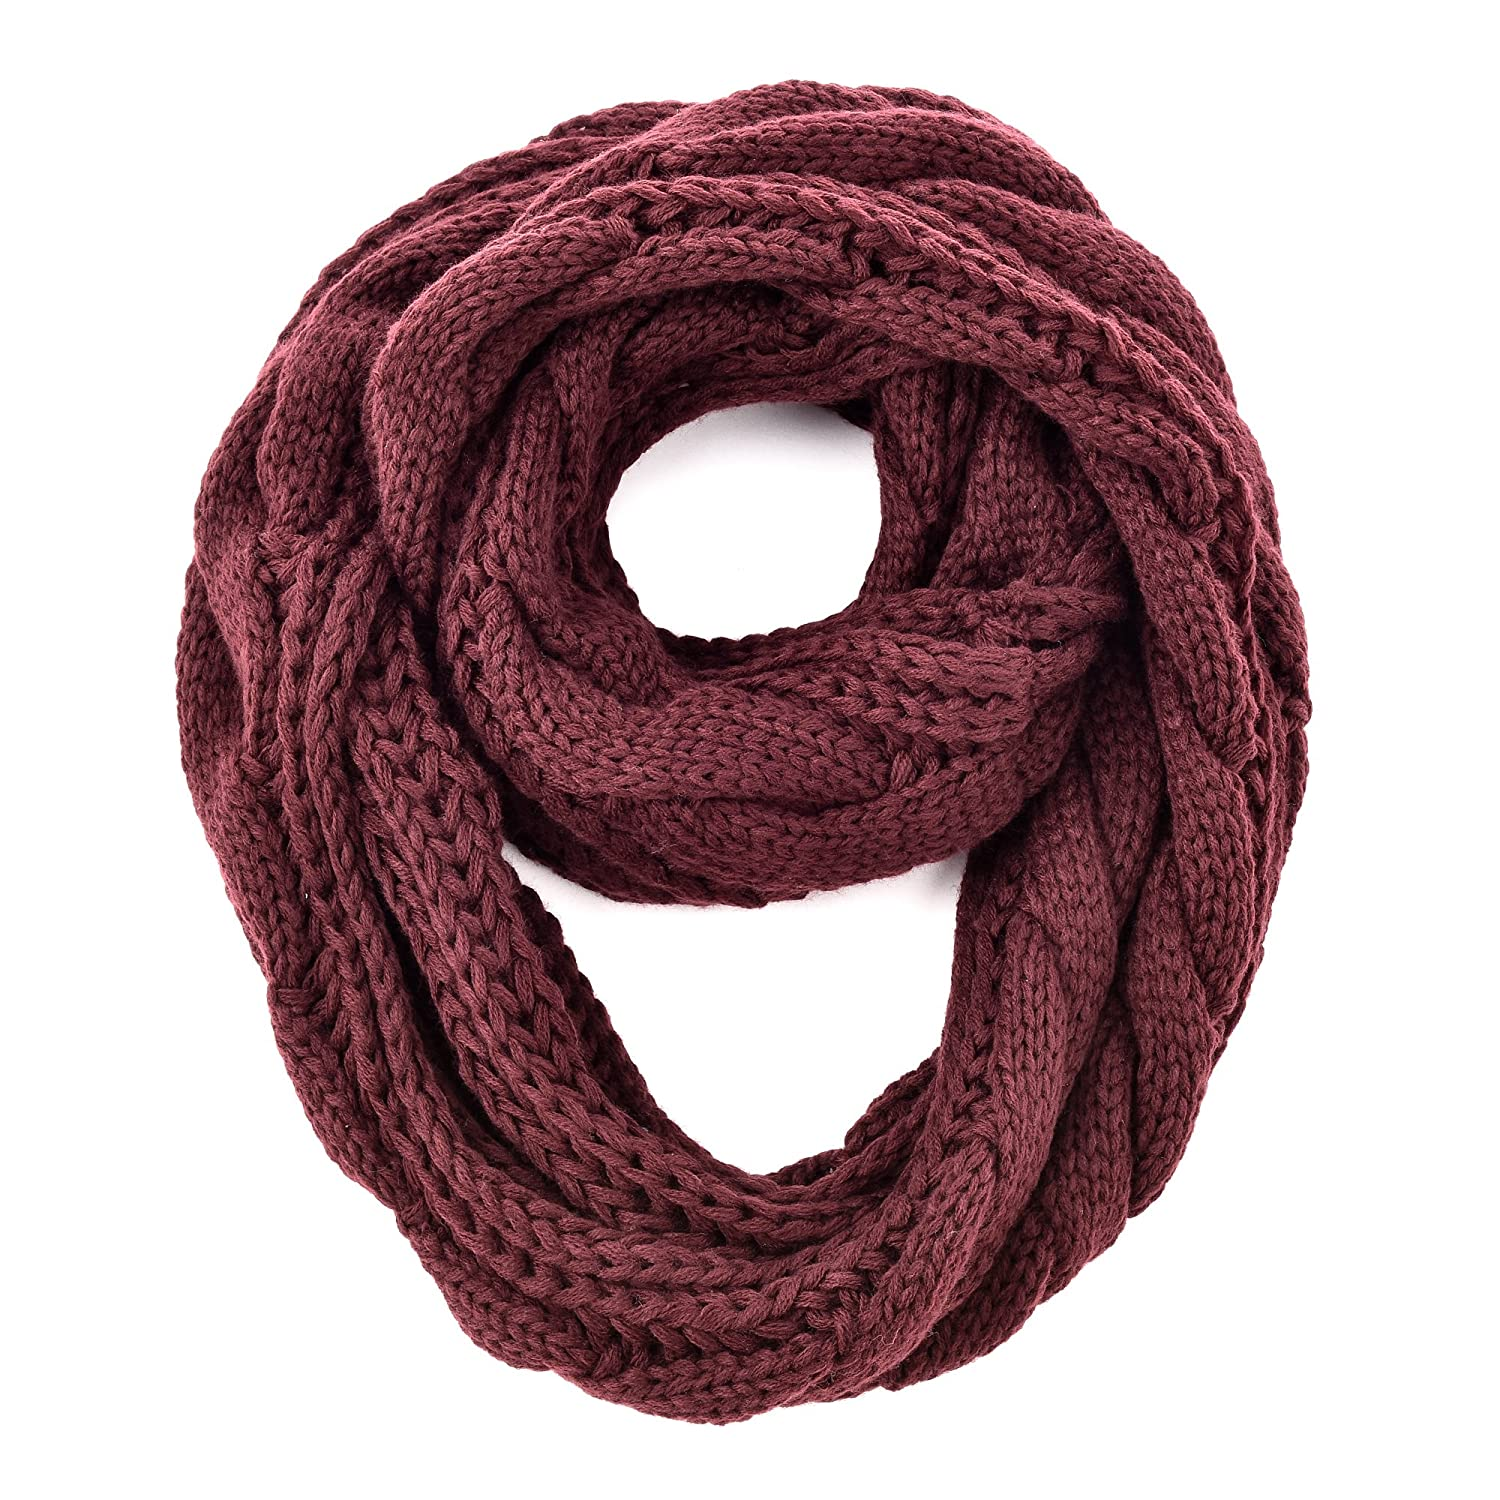 RiscaWin Women Knit Winter Infinity Scarf Warm Thick Neckerchief Circle Loop (WineRed)